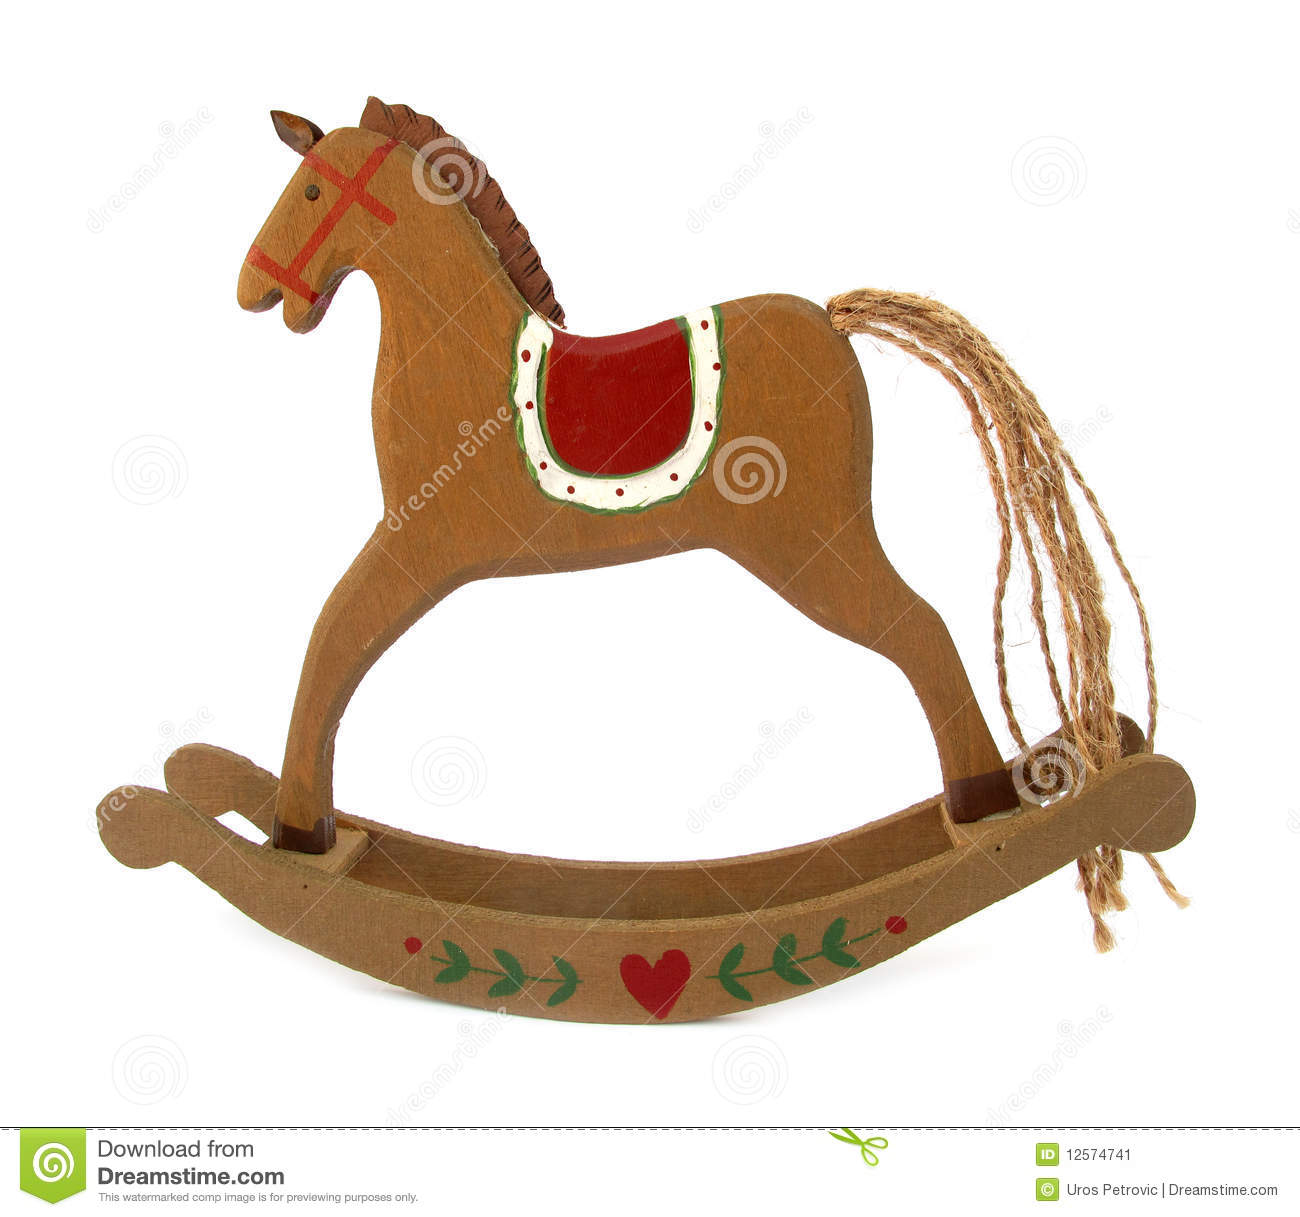 Wooden Toy Horse For Rocking Stock Image - Image: 12574741